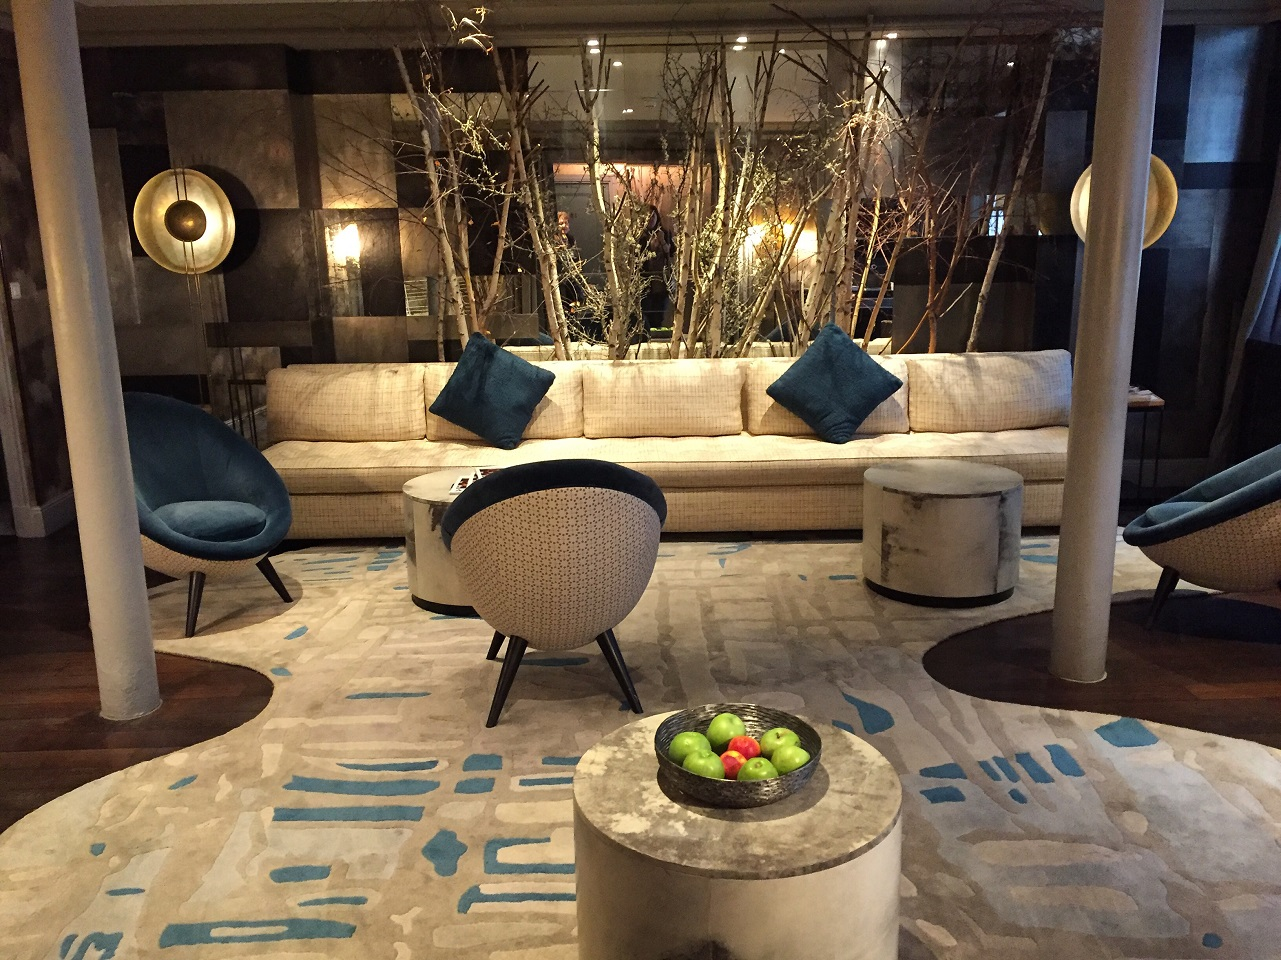 Hotel therese review luxury paris boutique on the right for Hotel design paris 8